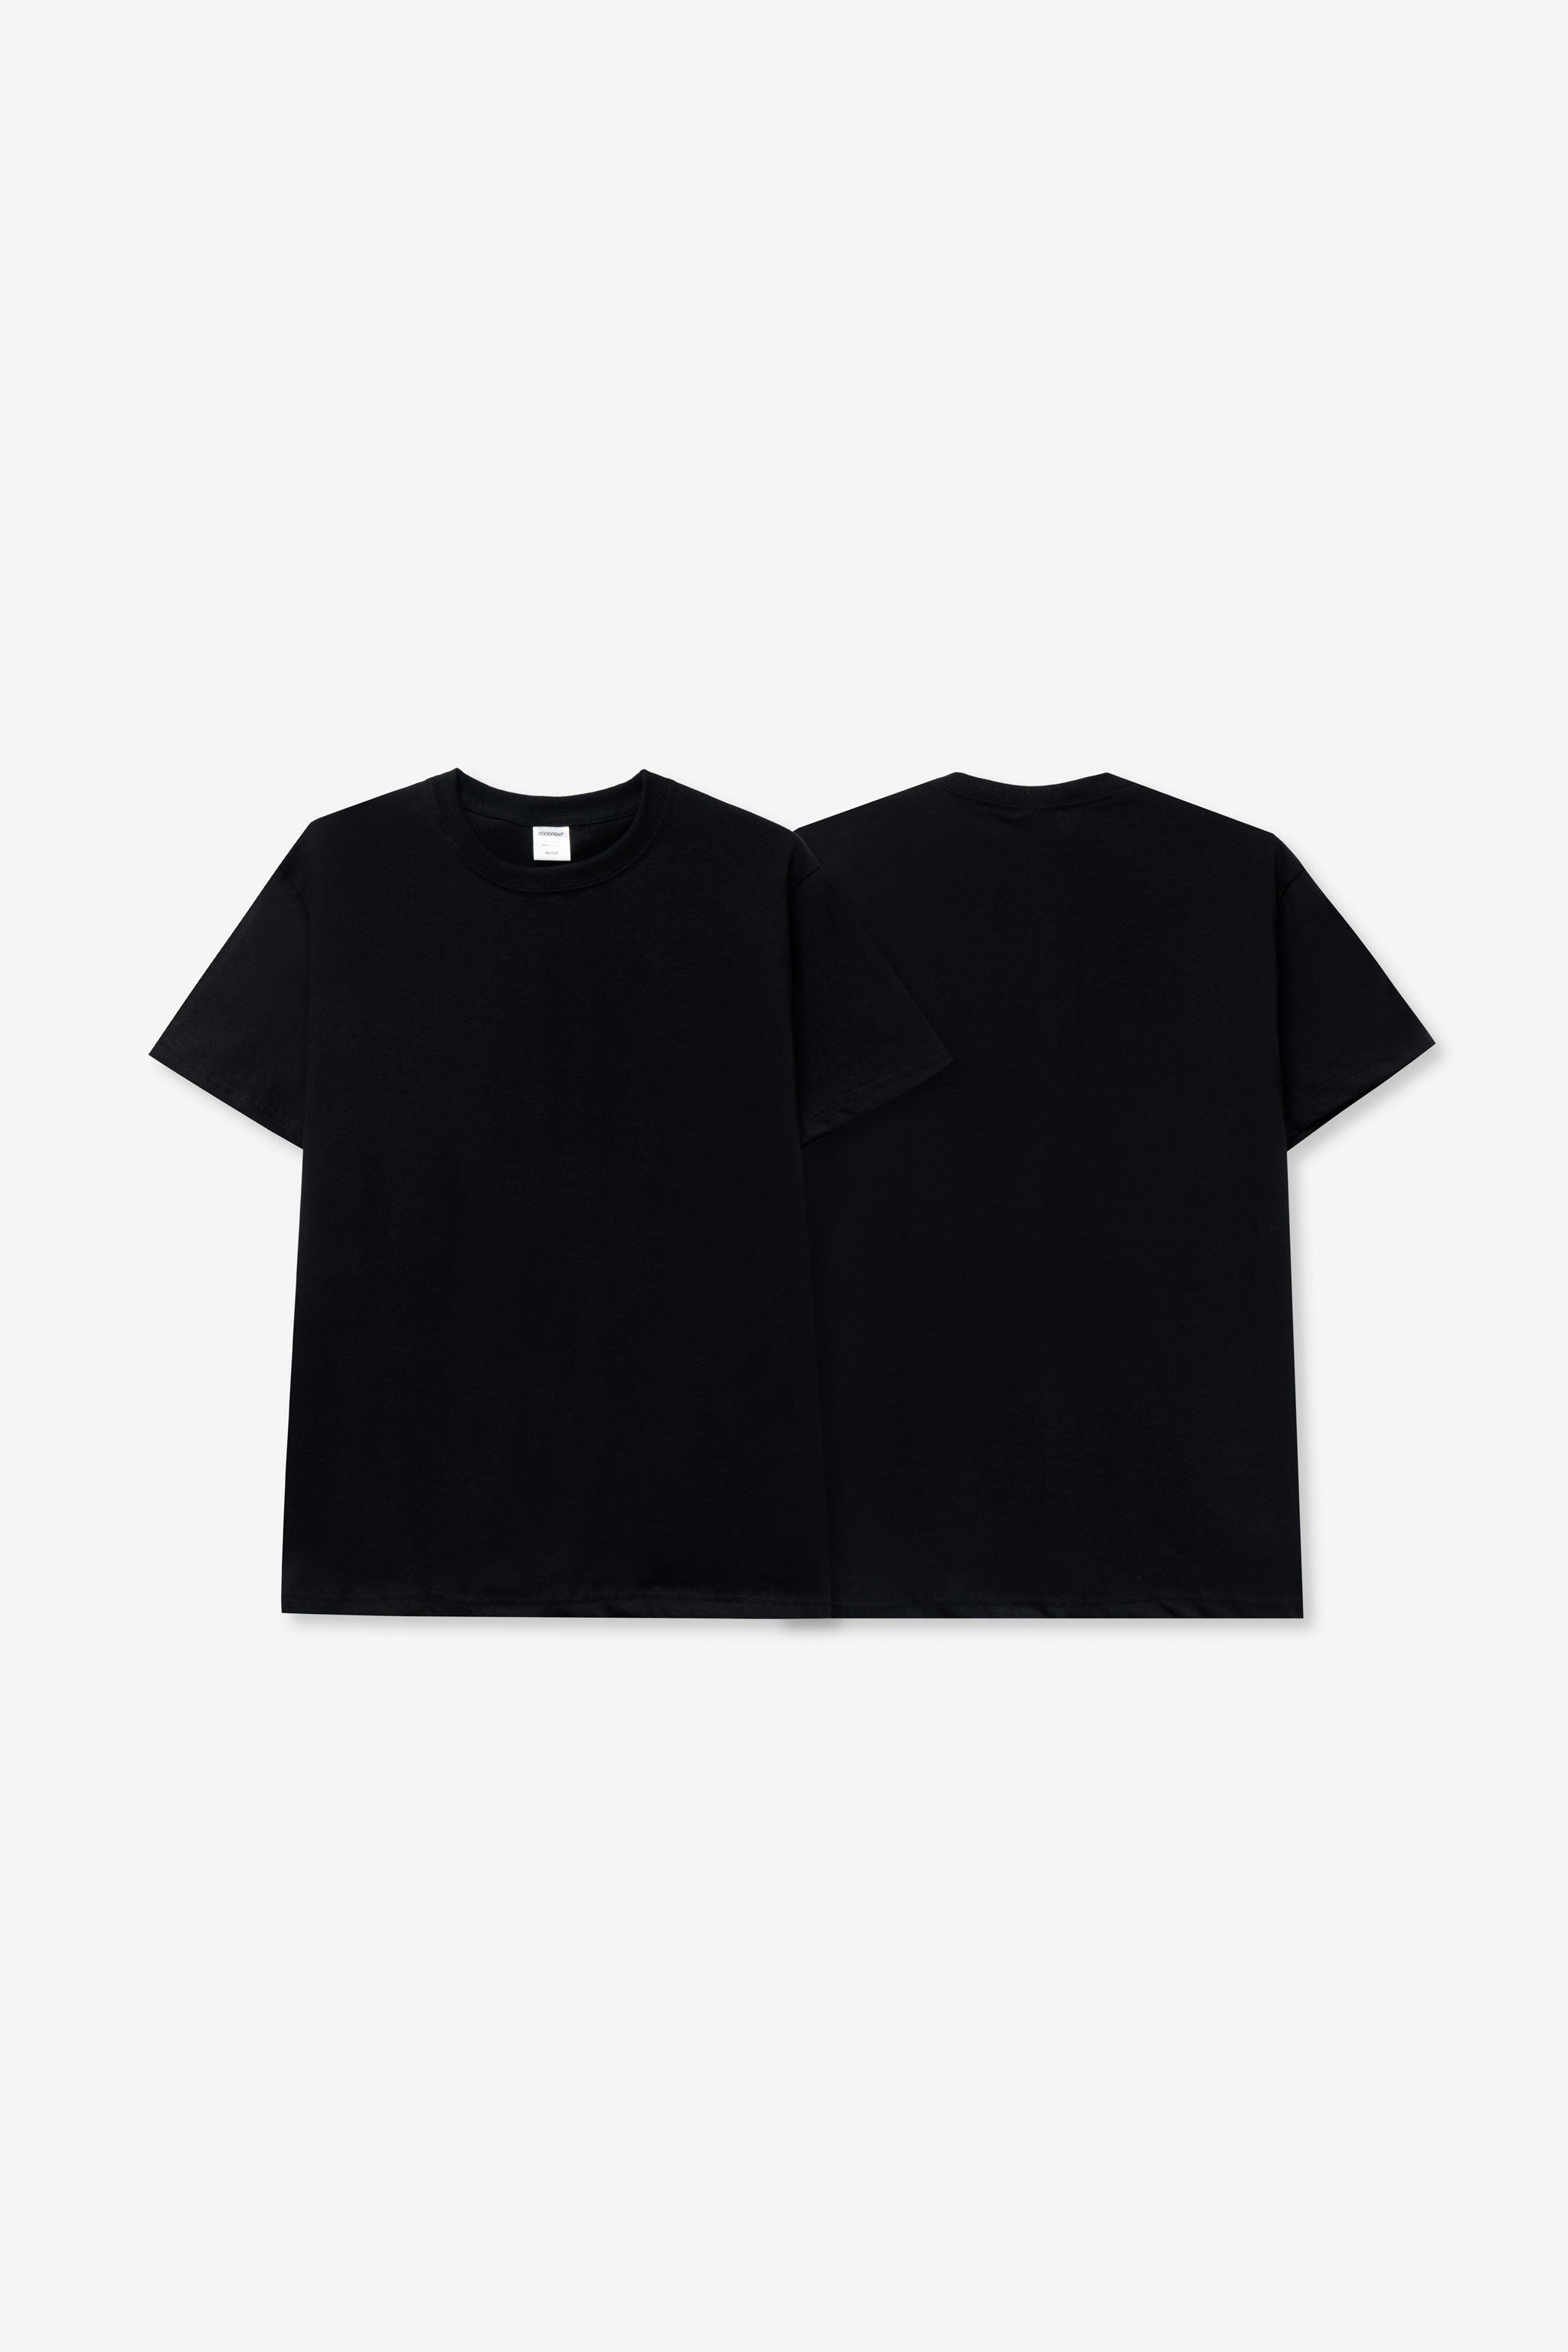 Goodfigtht Club Tee 2-Pack